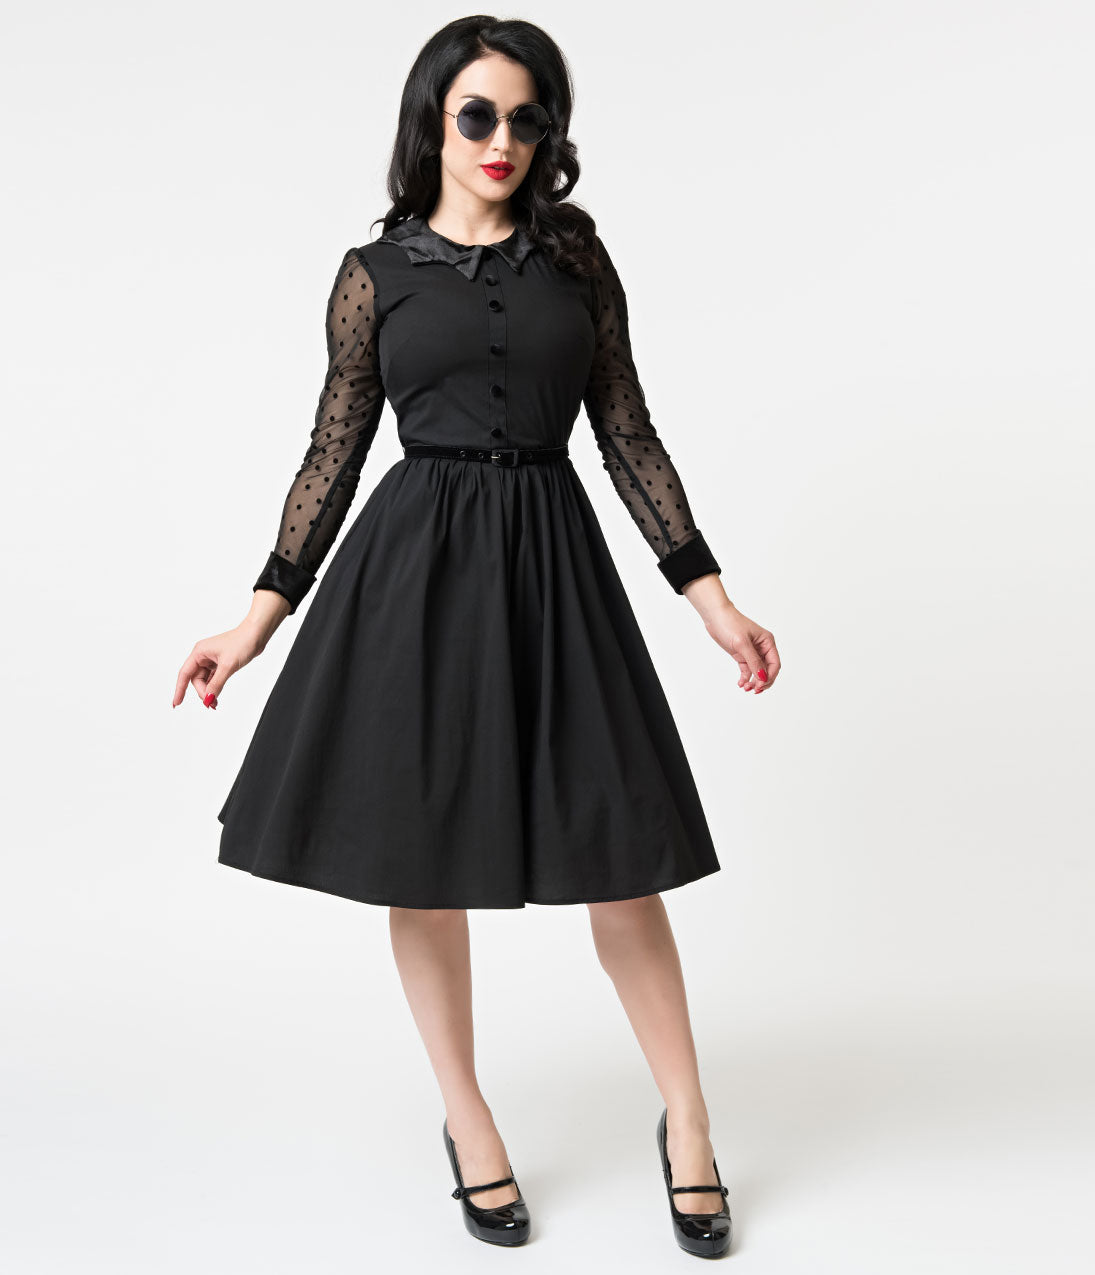 50 Vintage Halloween Costume Ideas Folter Black Cotton Mesh Long Sleeve Nocturnal Swing Dress $98.00 AT  sc 1 st  Vintage Dancer & 50 Vintage Halloween Costume Ideas